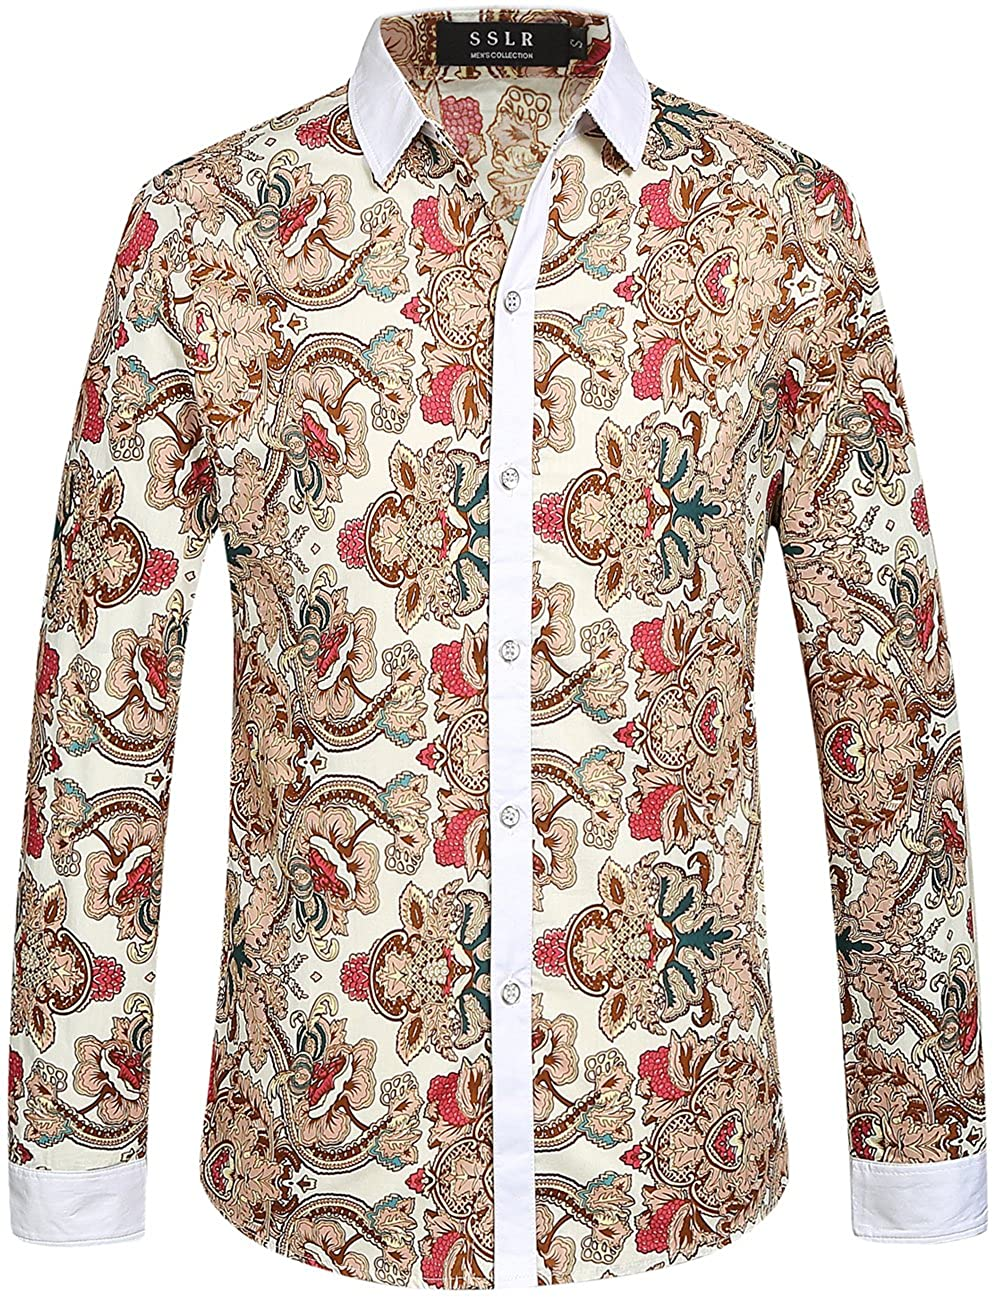 Mens Vintage Shirts – Casual, Dress, T-shirts, Polos SSLR Mens Vintage Printed Button Down Casual Long Sleeve Shirt $26.00 AT vintagedancer.com